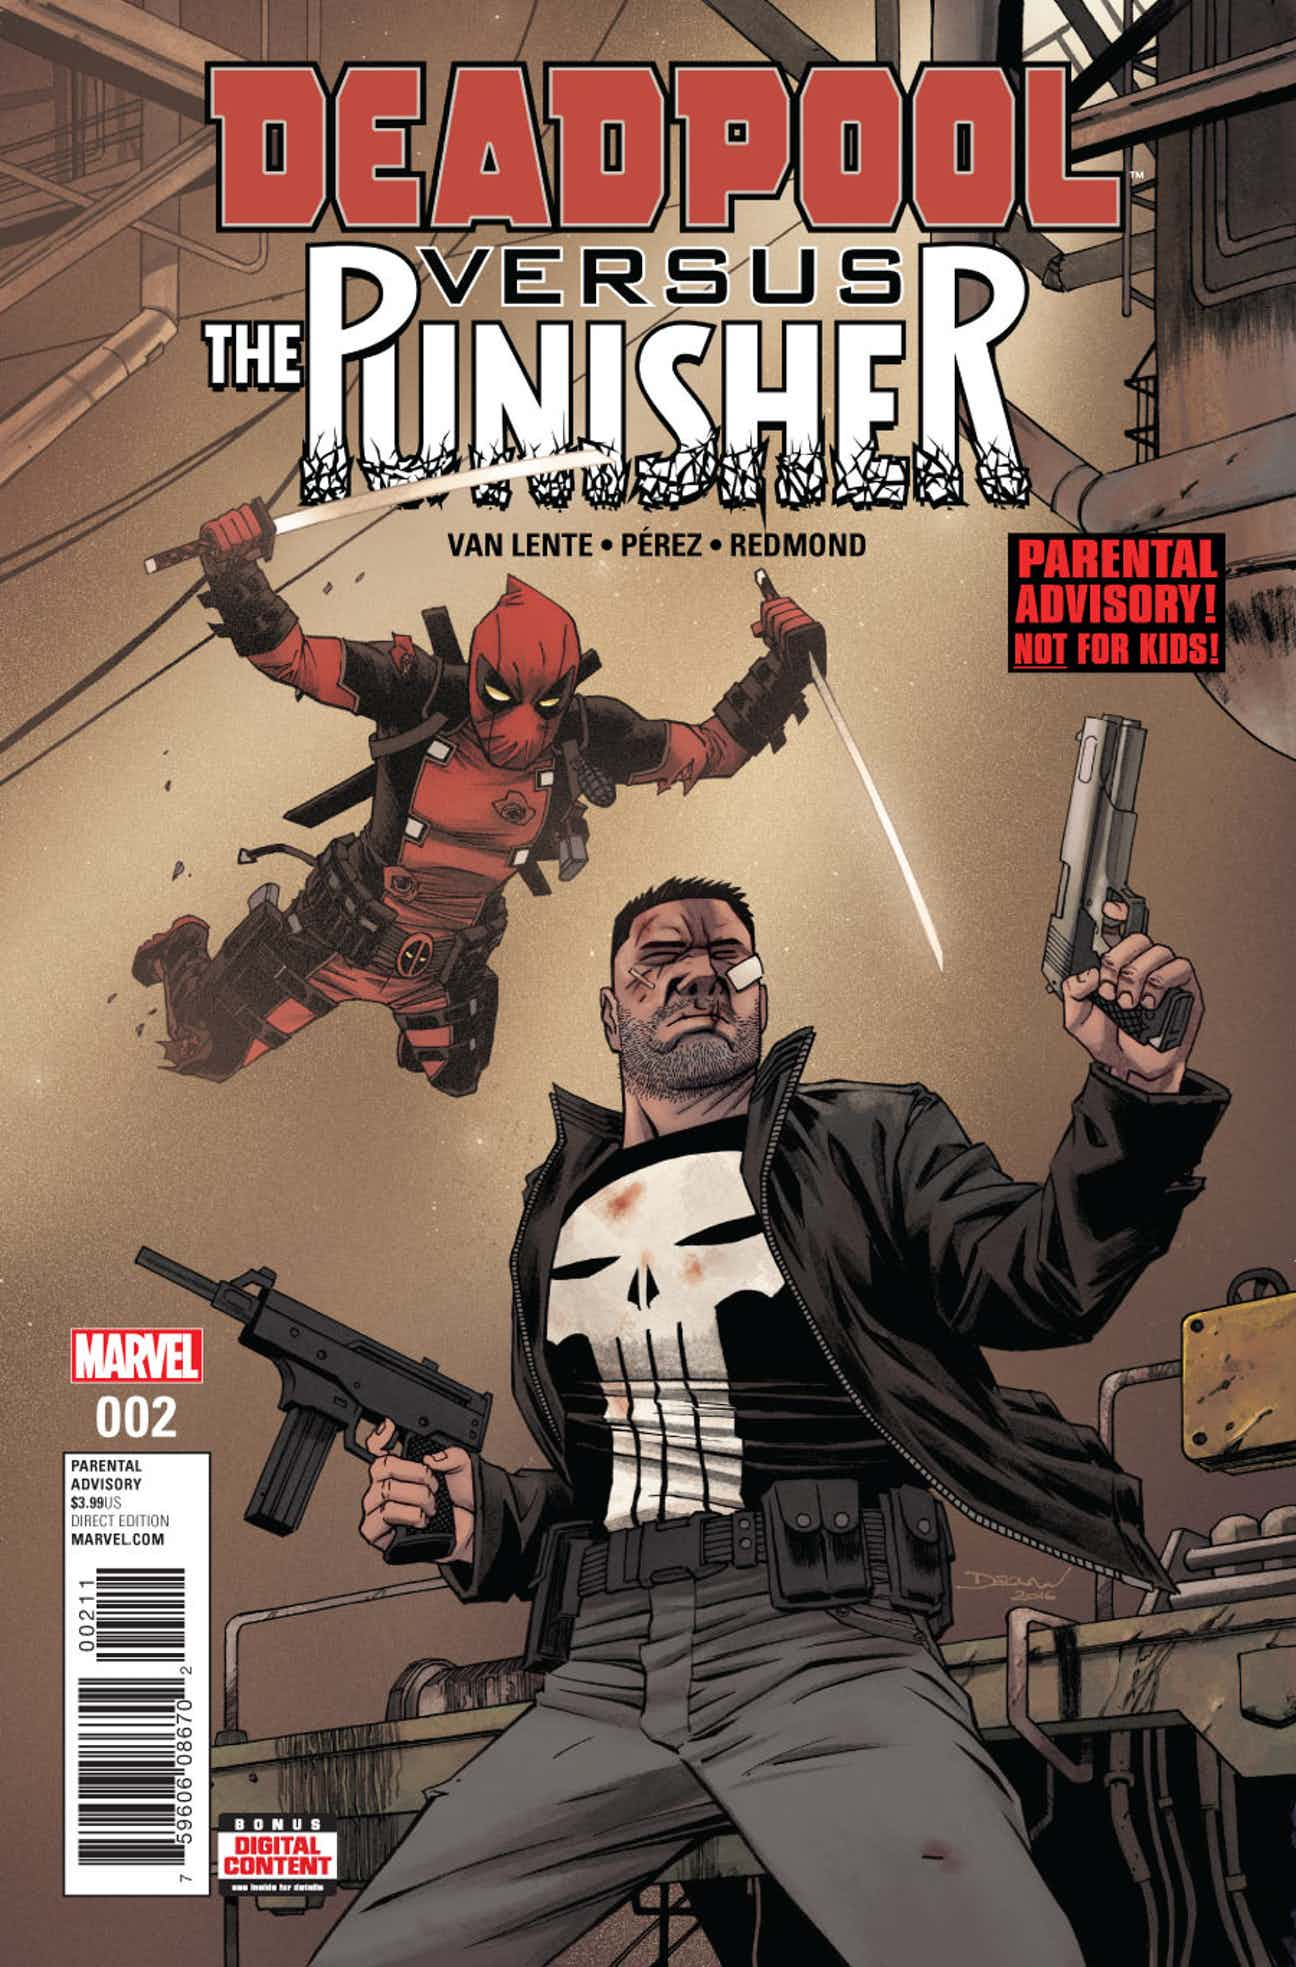 Deadpool vs. Punisher 2